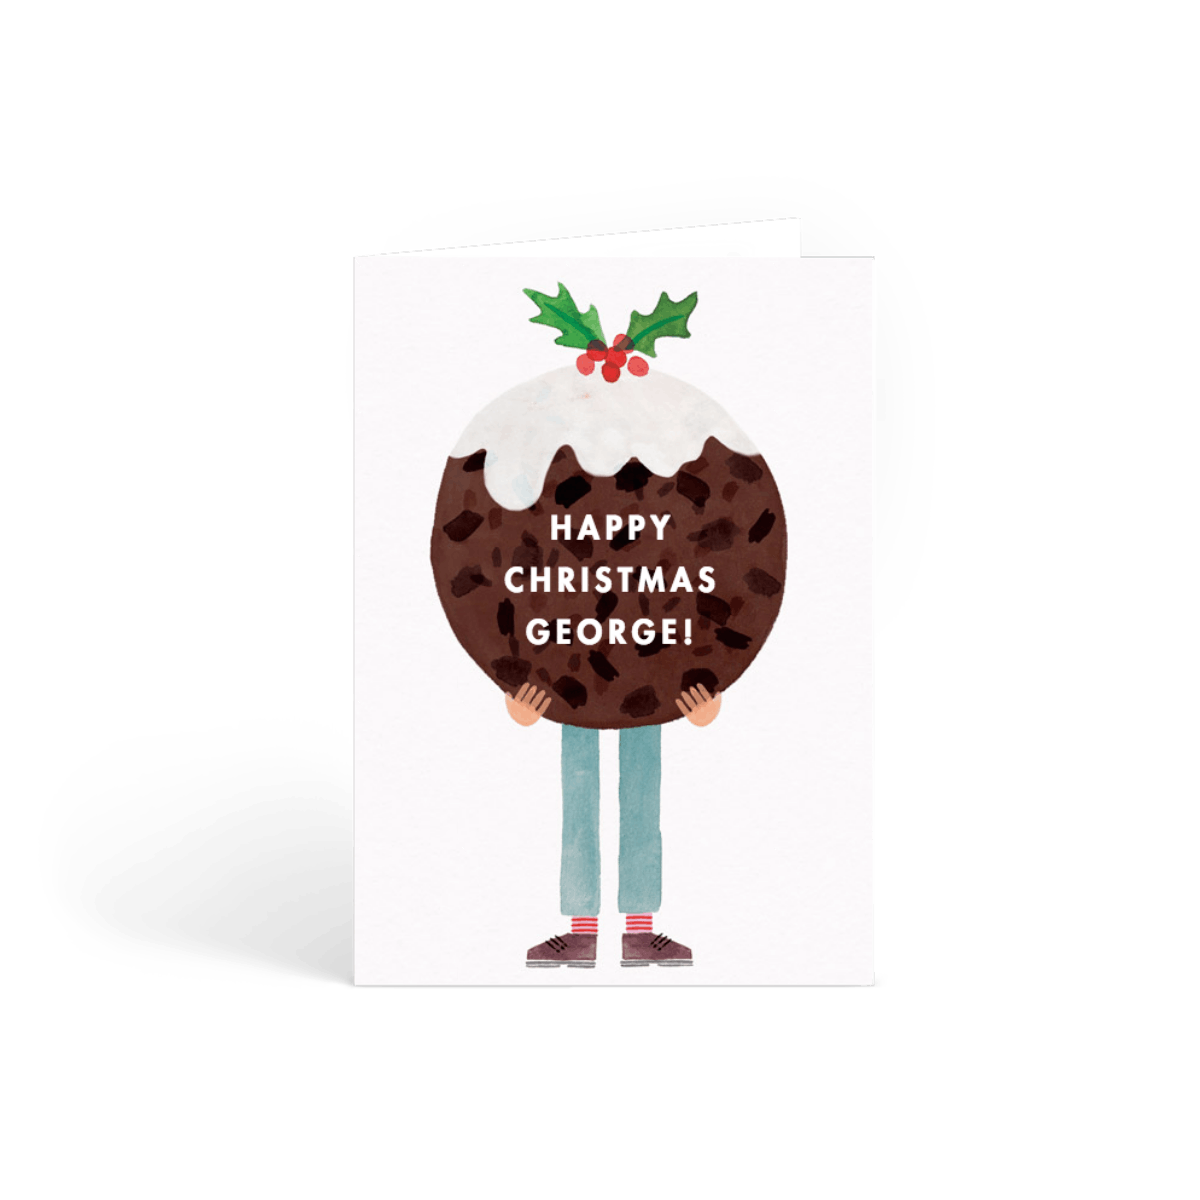 Https%3a%2f%2fwww.papier.com%2fproduct image%2f8493%2f2%2fchristmas pudding boy 2105 front 1567714312.png?ixlib=rb 1.1